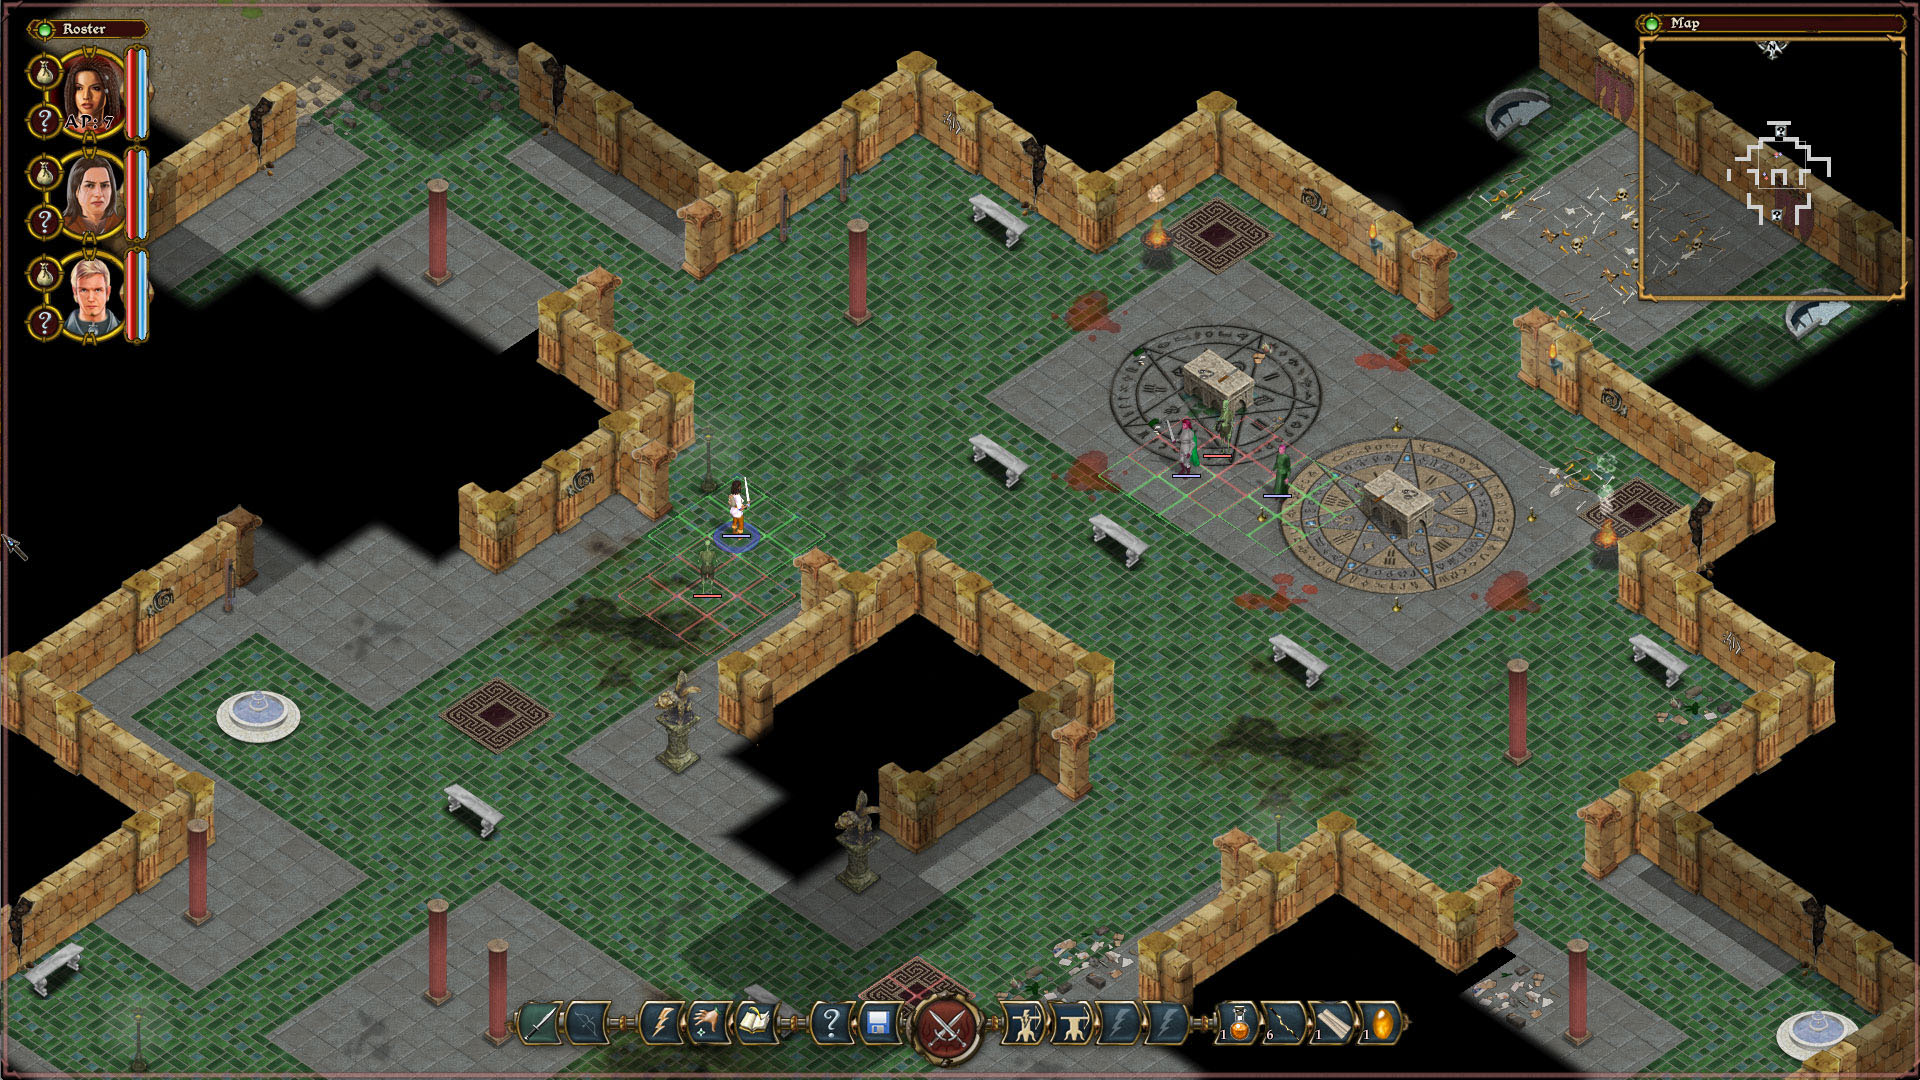 Avadon 2 Old School Style Rpg Set For Oct 30 Release Imore